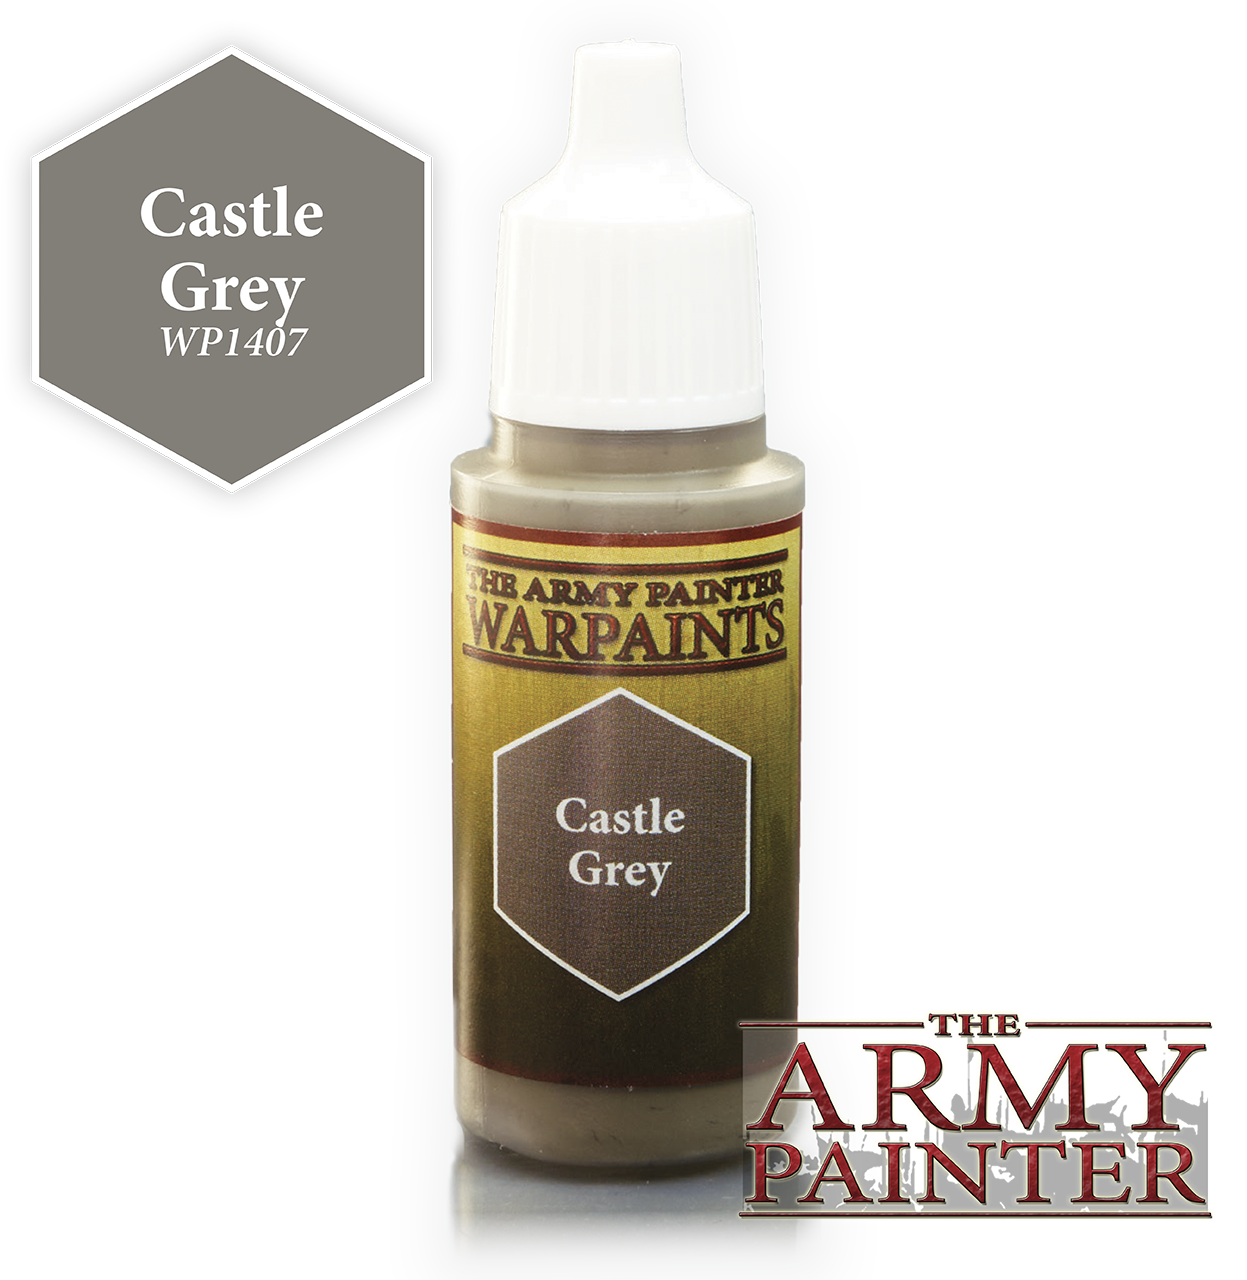 Castle Grey - Army Painter Warpaints